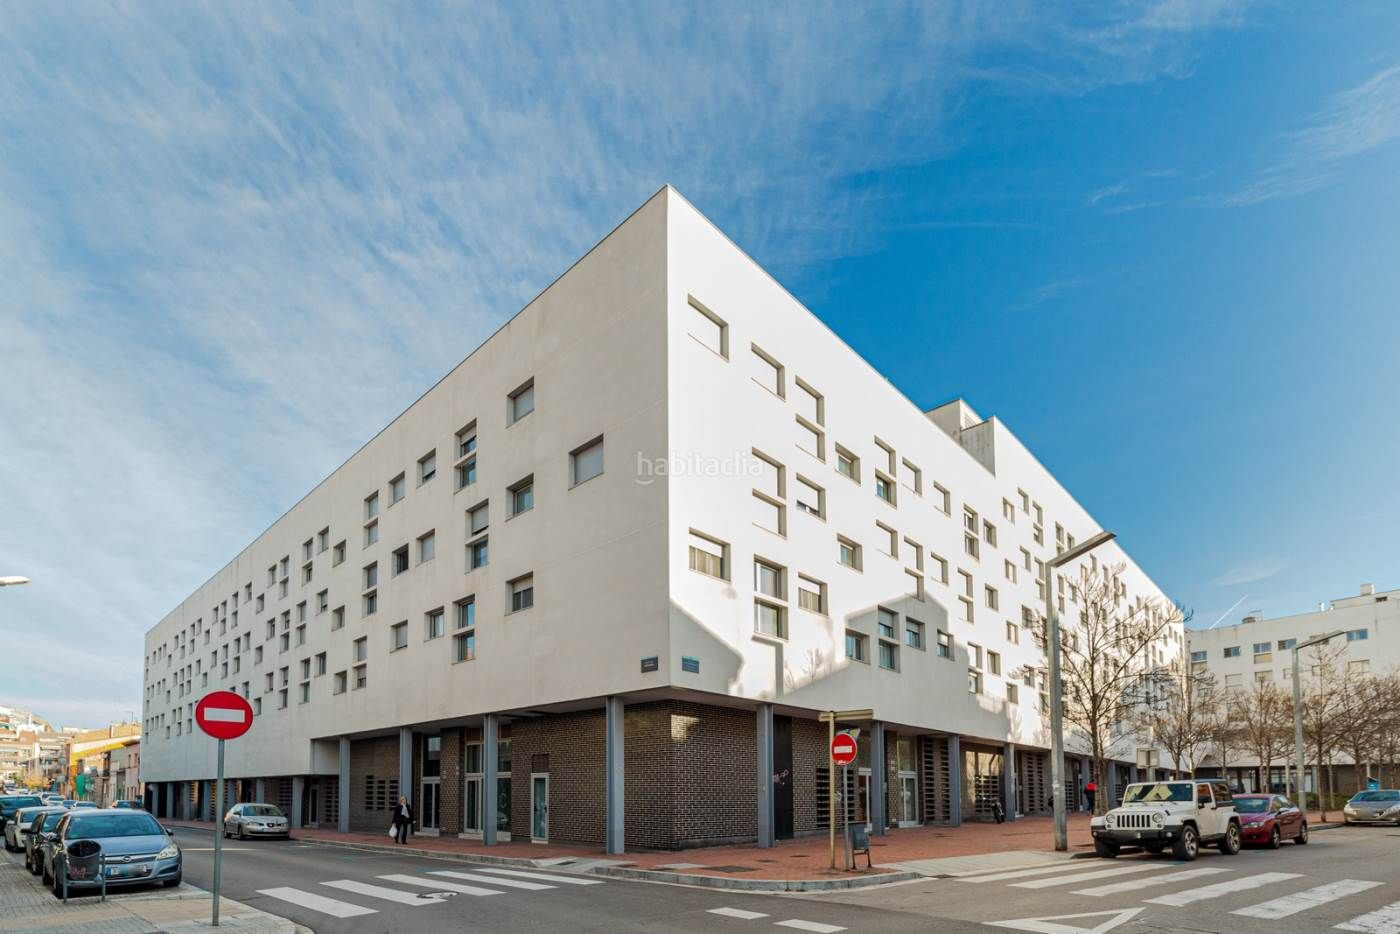 Miete Etagenwohnung in Centre. Piso con 3 habitaciones, ascensor y parking